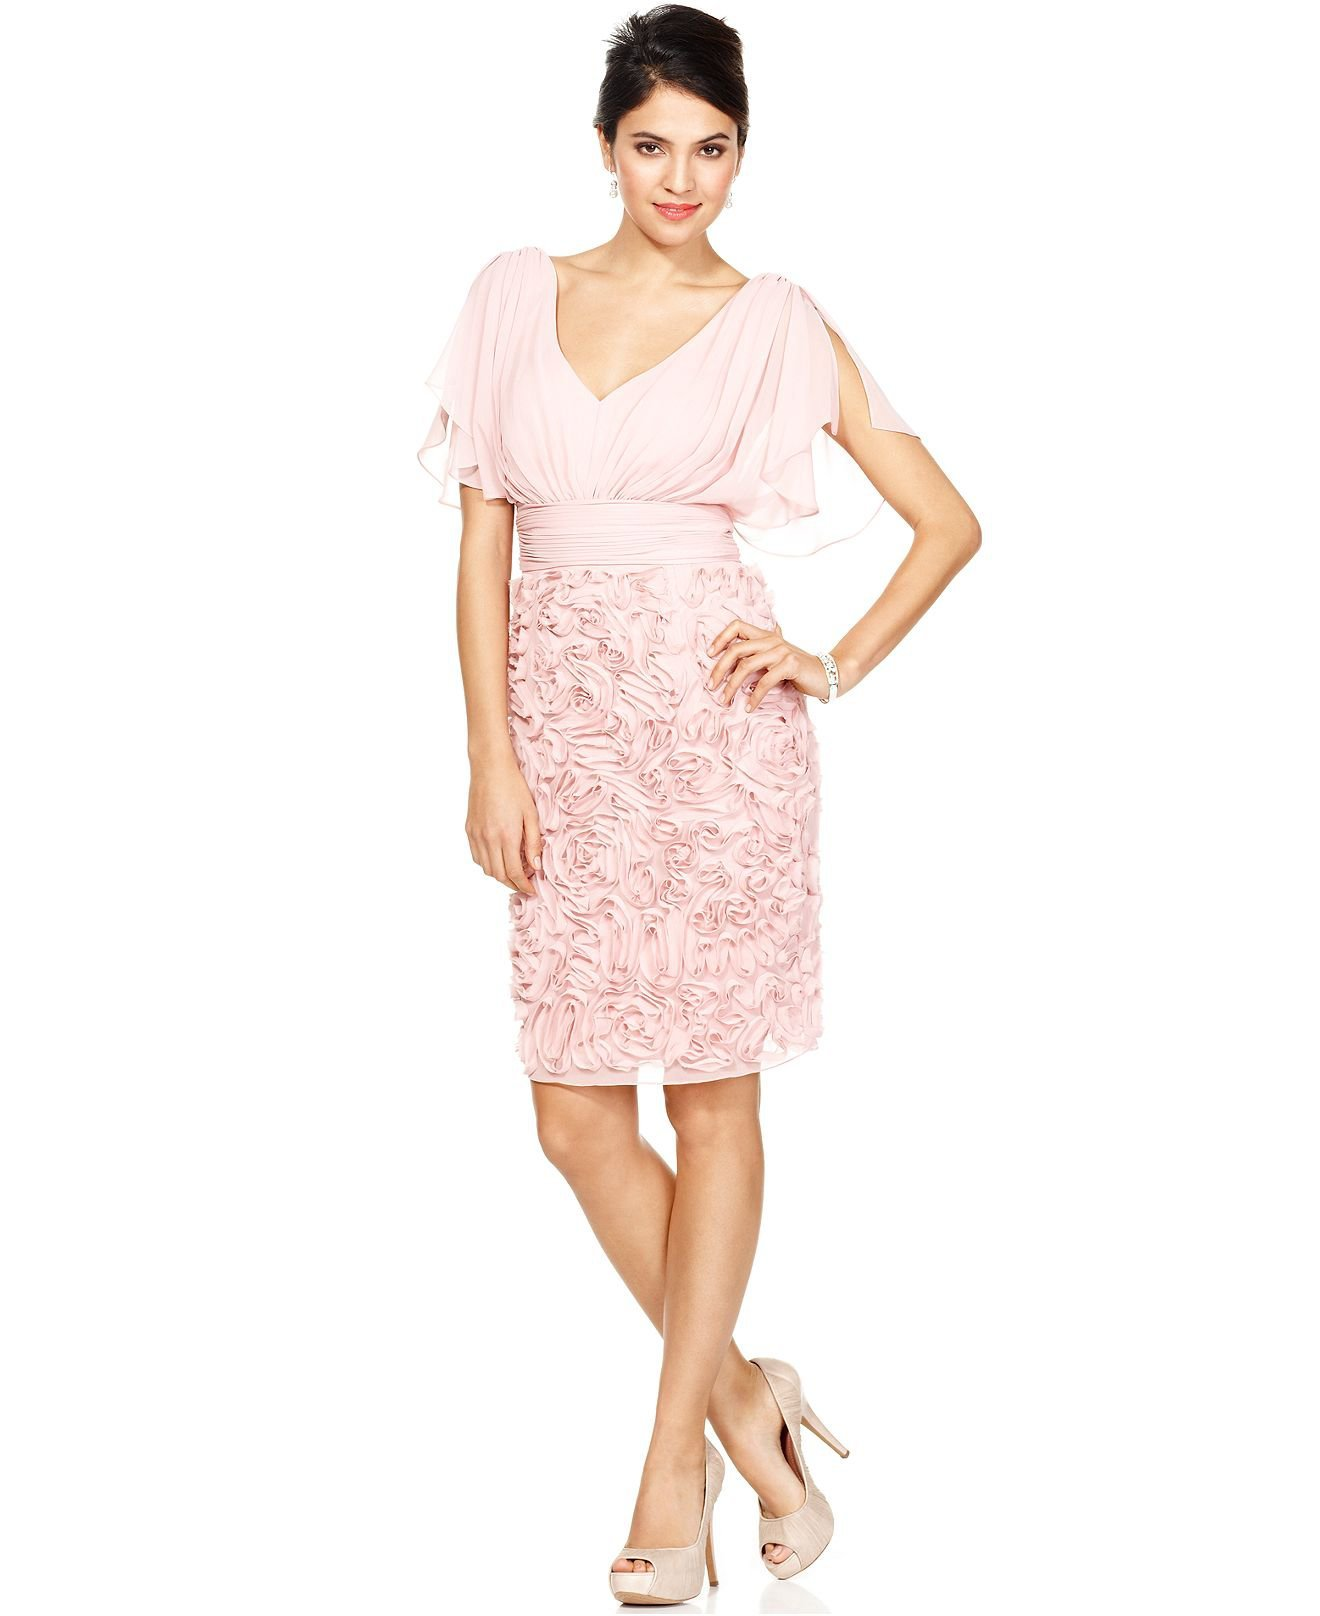 Js collections dress short split sleeve from macys for Macy wedding dresses mother of the bride